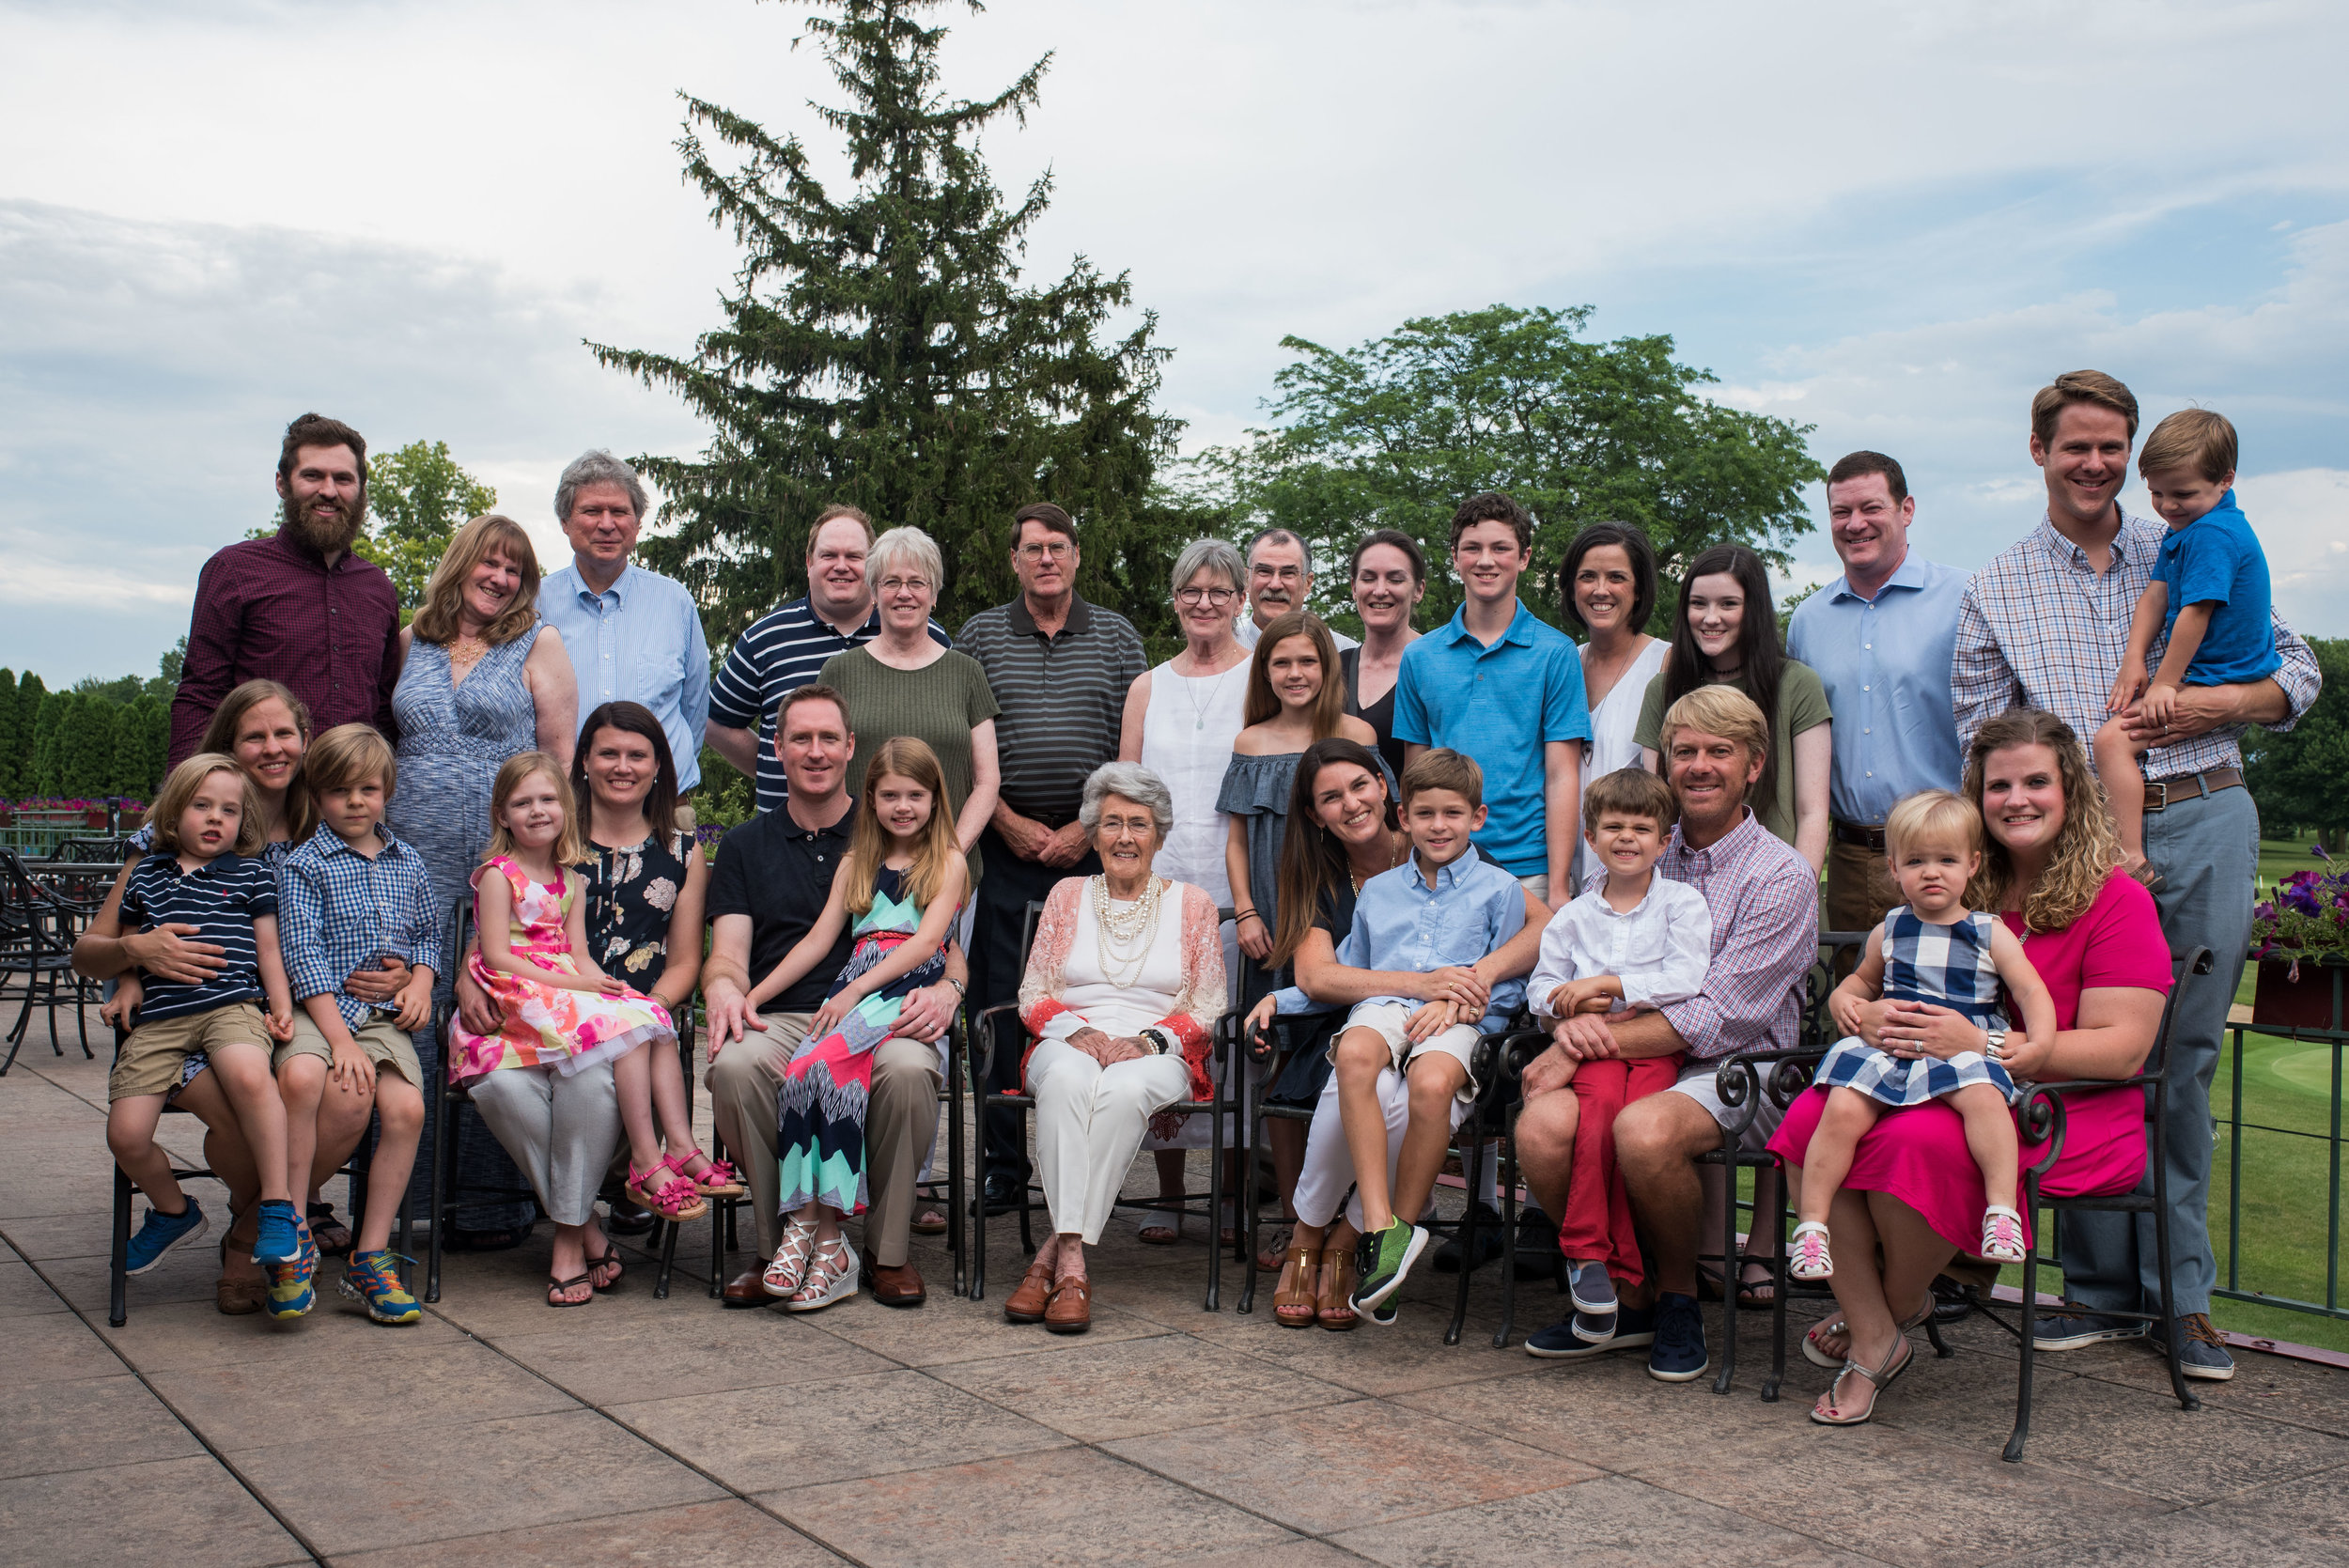 Eleven great-grand children (+ one on the way!), eight grandchildren, three children, several (very!) significant others and one amazing woman.